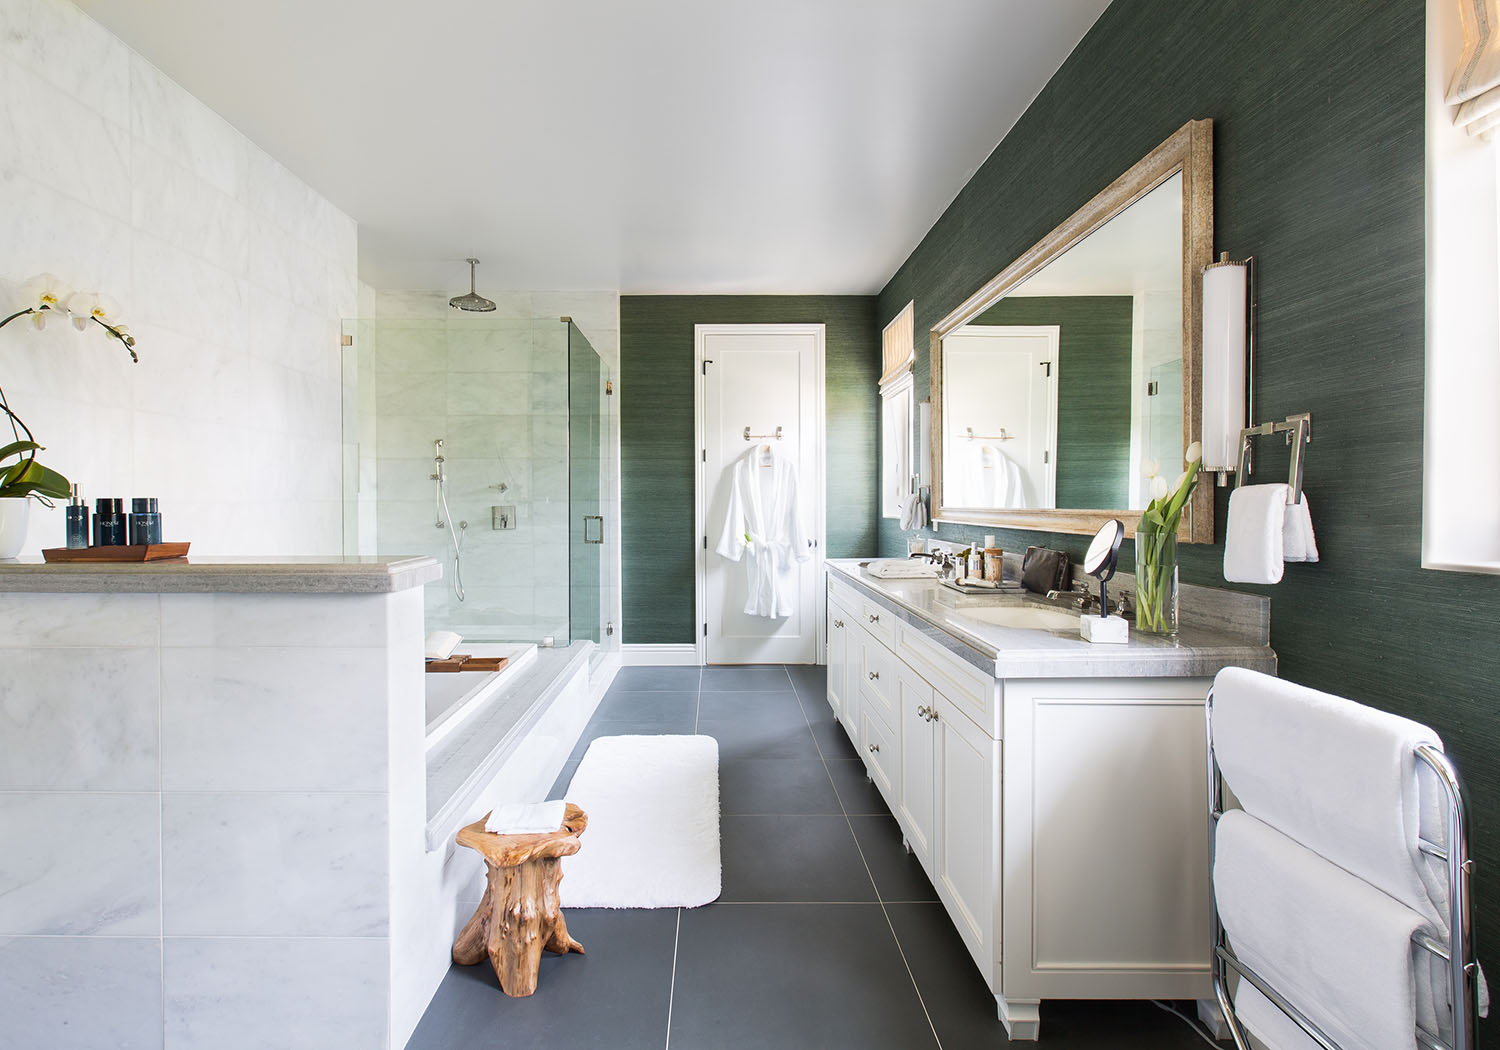 Earthy elements like the vintage, wooden stool and fresh florals brighten up this modern bathroom. White bathroom countertops, cabinets, and bathtub are enhanced by grey tiles and walls of a rich, jade hue.